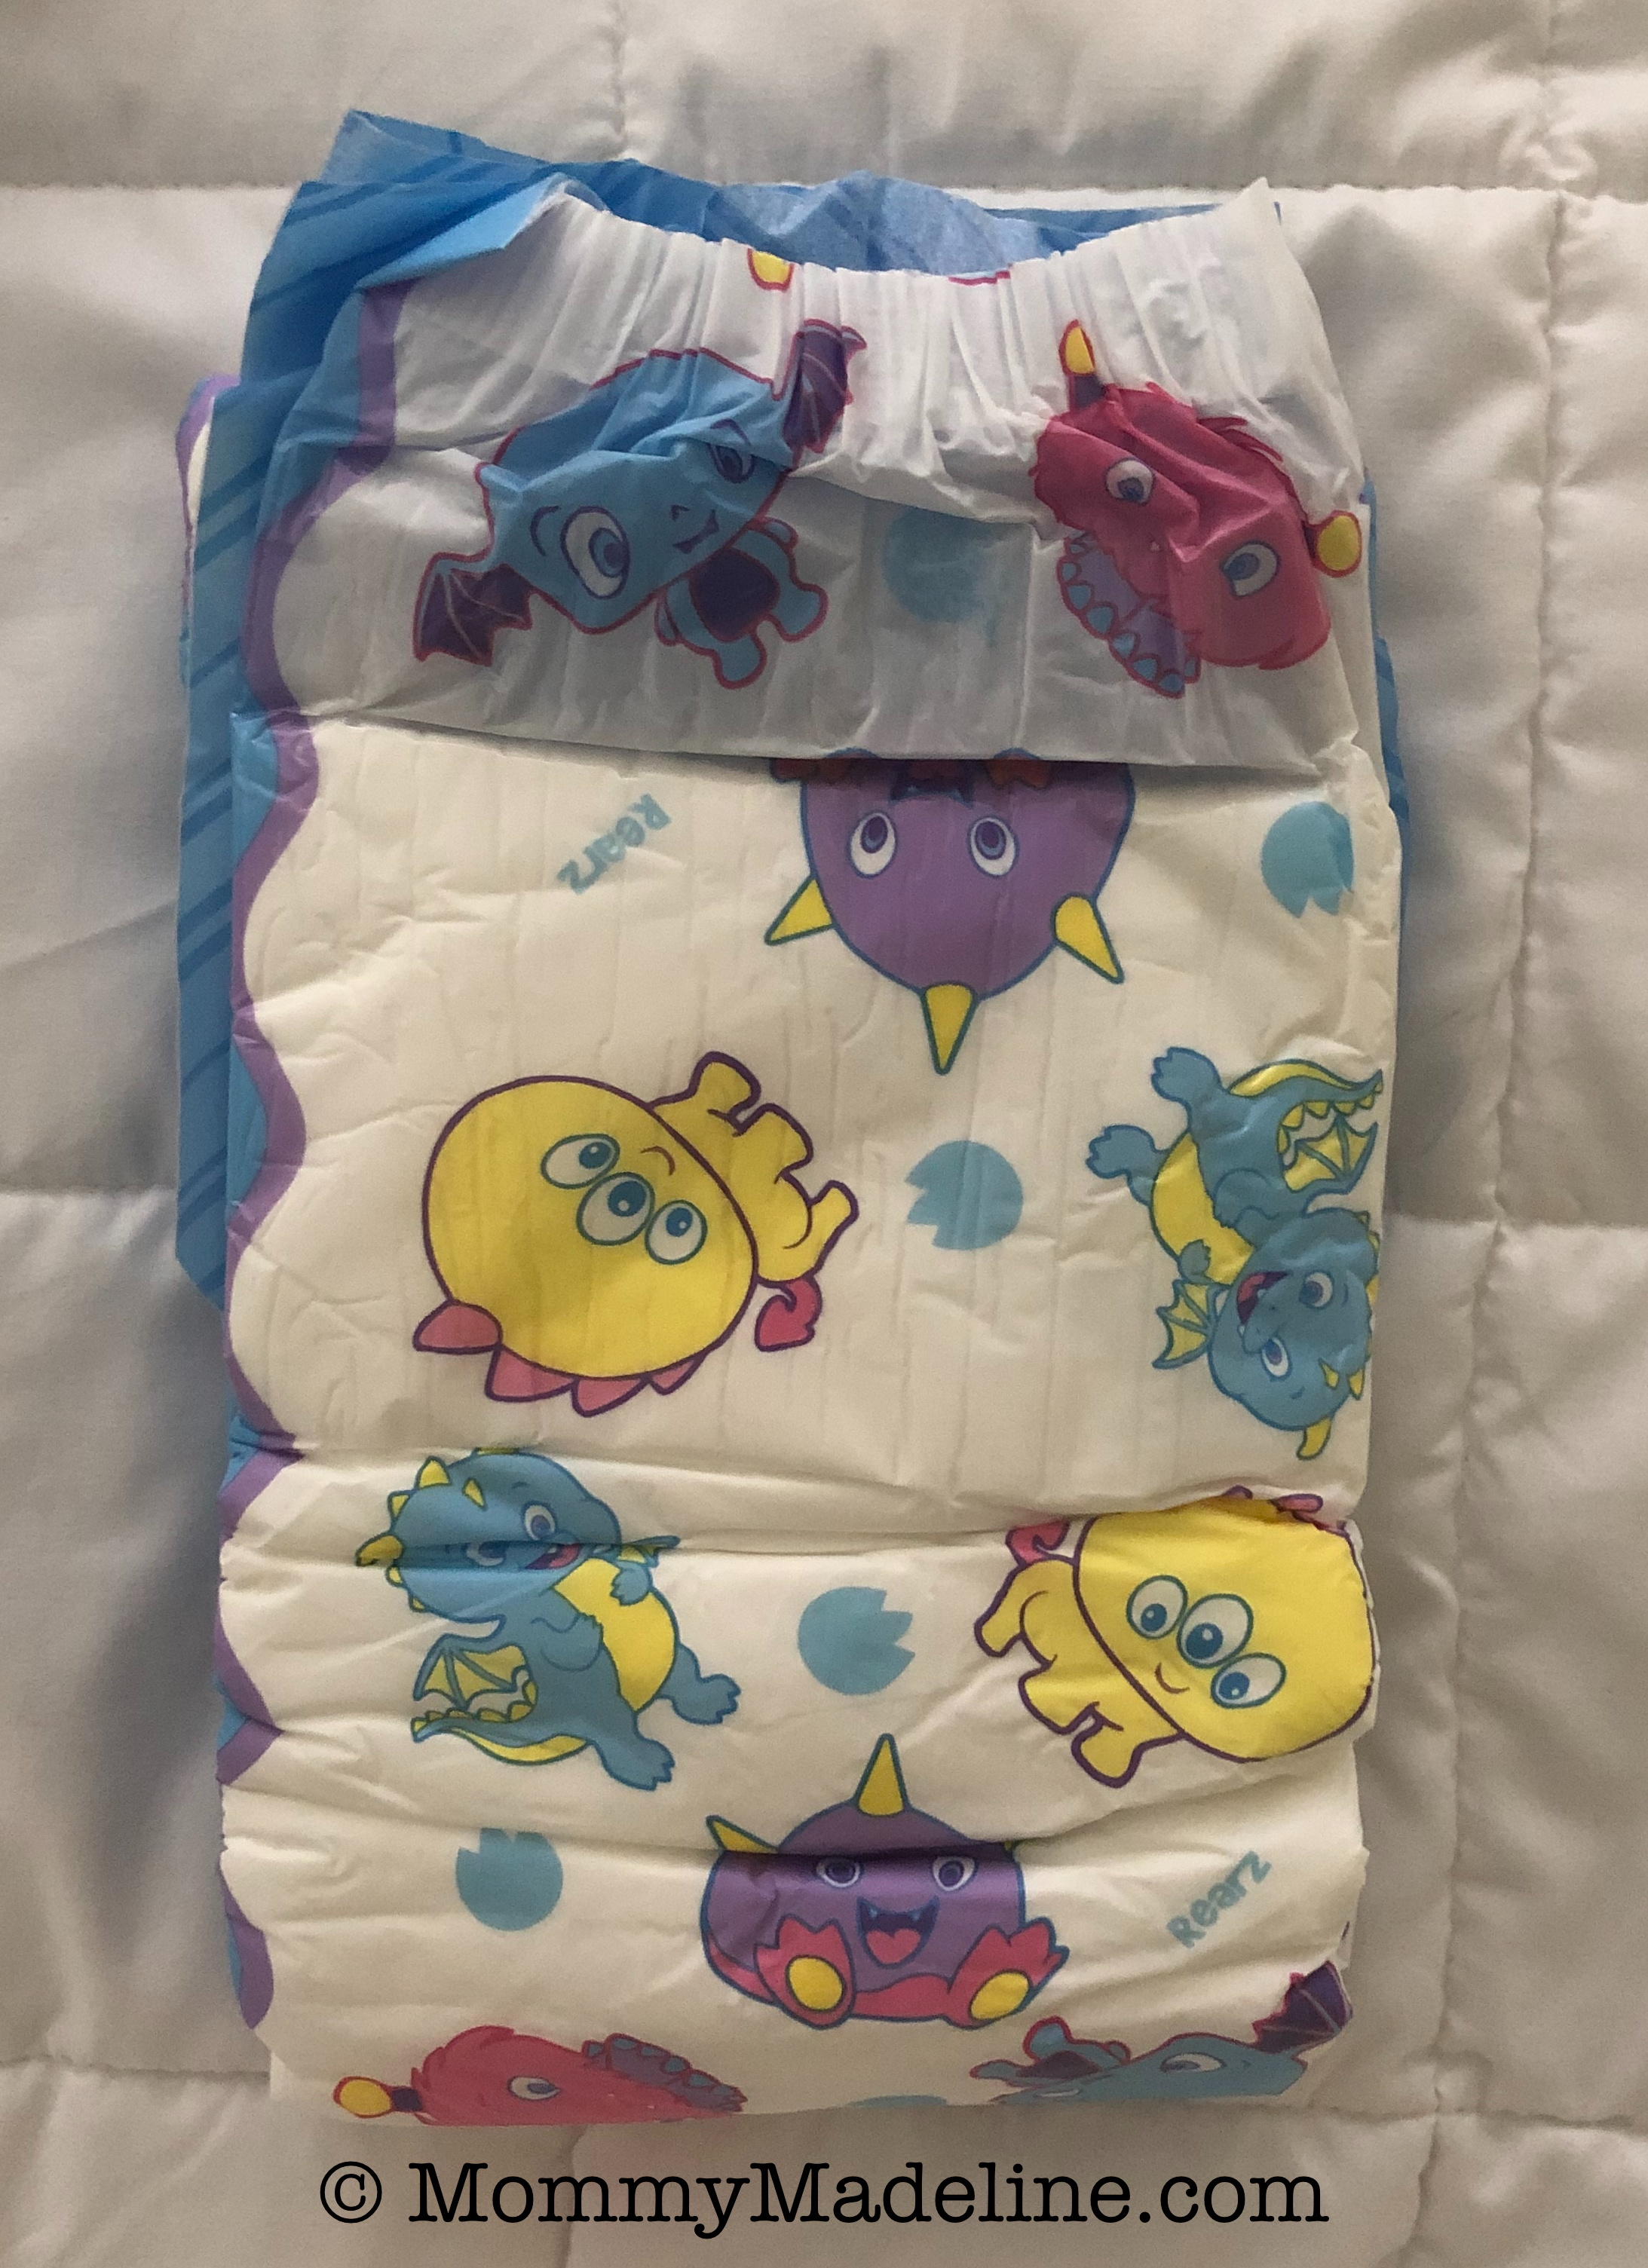 Rearz Lil Monsters diaper